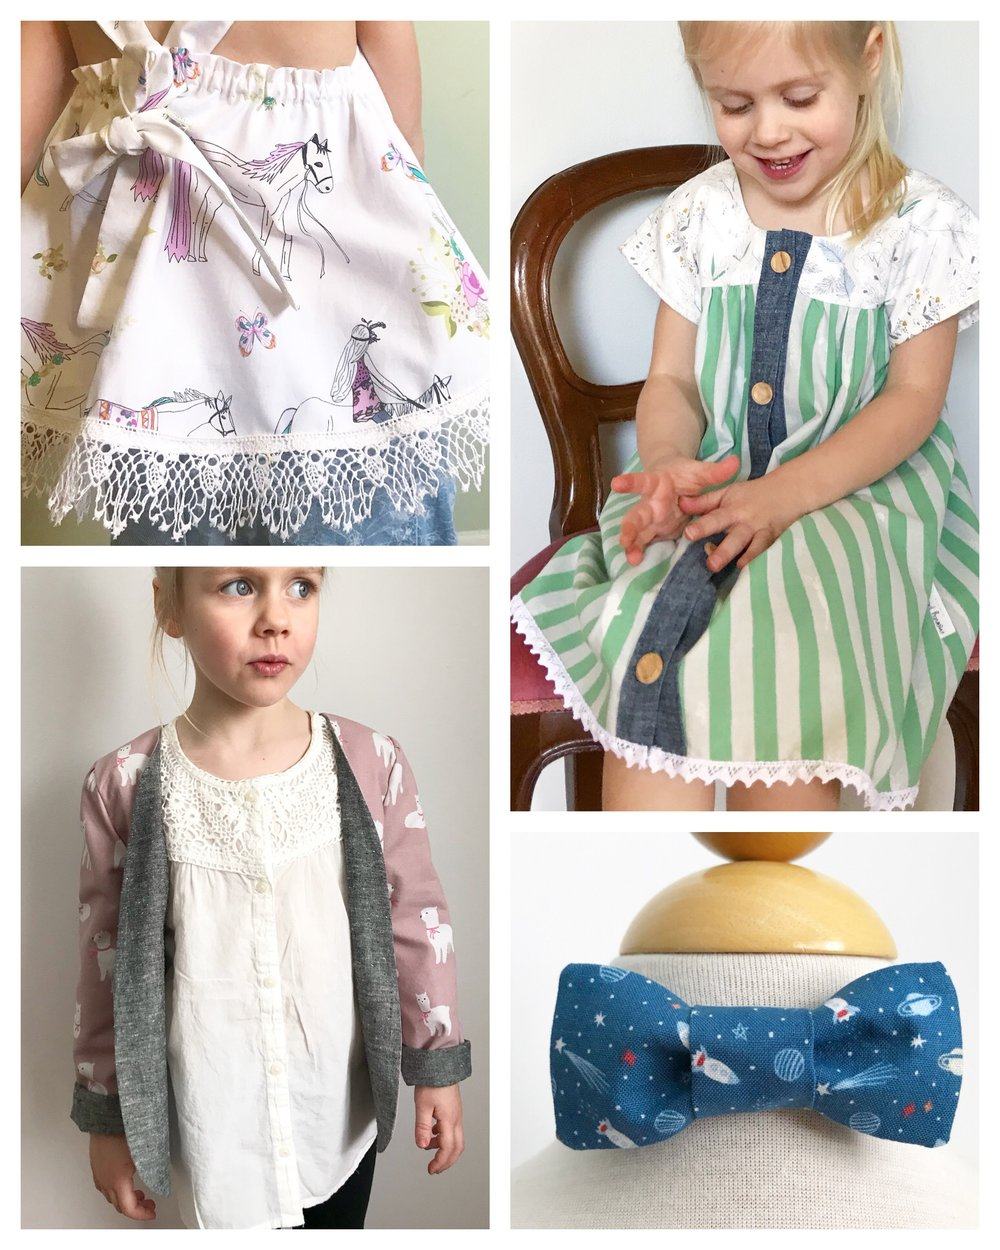 Money Penny Designs - Quality over Quantity! Money Penny creates unique to market fashion staples that grow with your kids. We are a small batch clothing brand and make regular drops of new items. Sign up to keep posted.